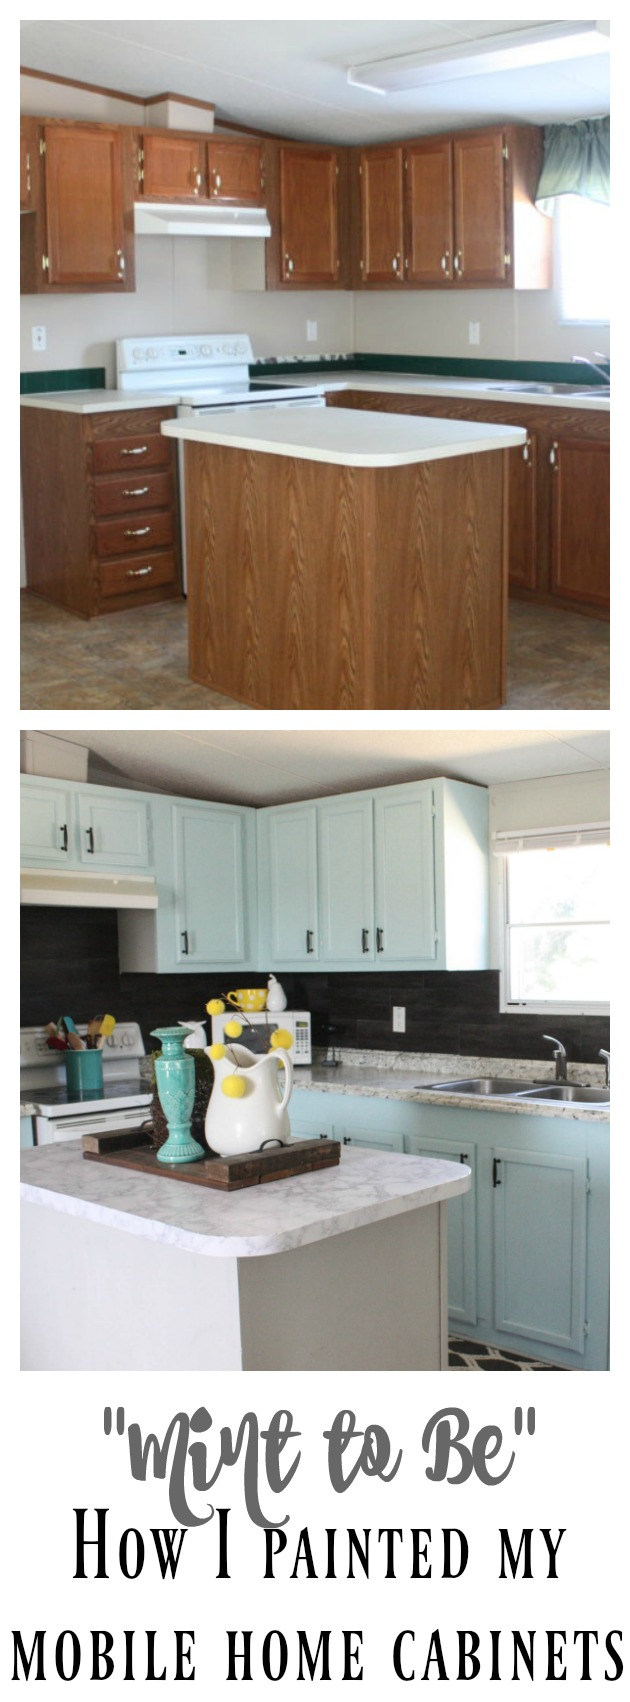 Mobile Home Cabinet Makeover - Re-Fabbed on paint mobile home counter tops, paint mobile home floor, paint mobile home wallpaper, paint mobile home siding, paint mobile home bathtubs, paint mobile home ceilings, paint mobile home walls,